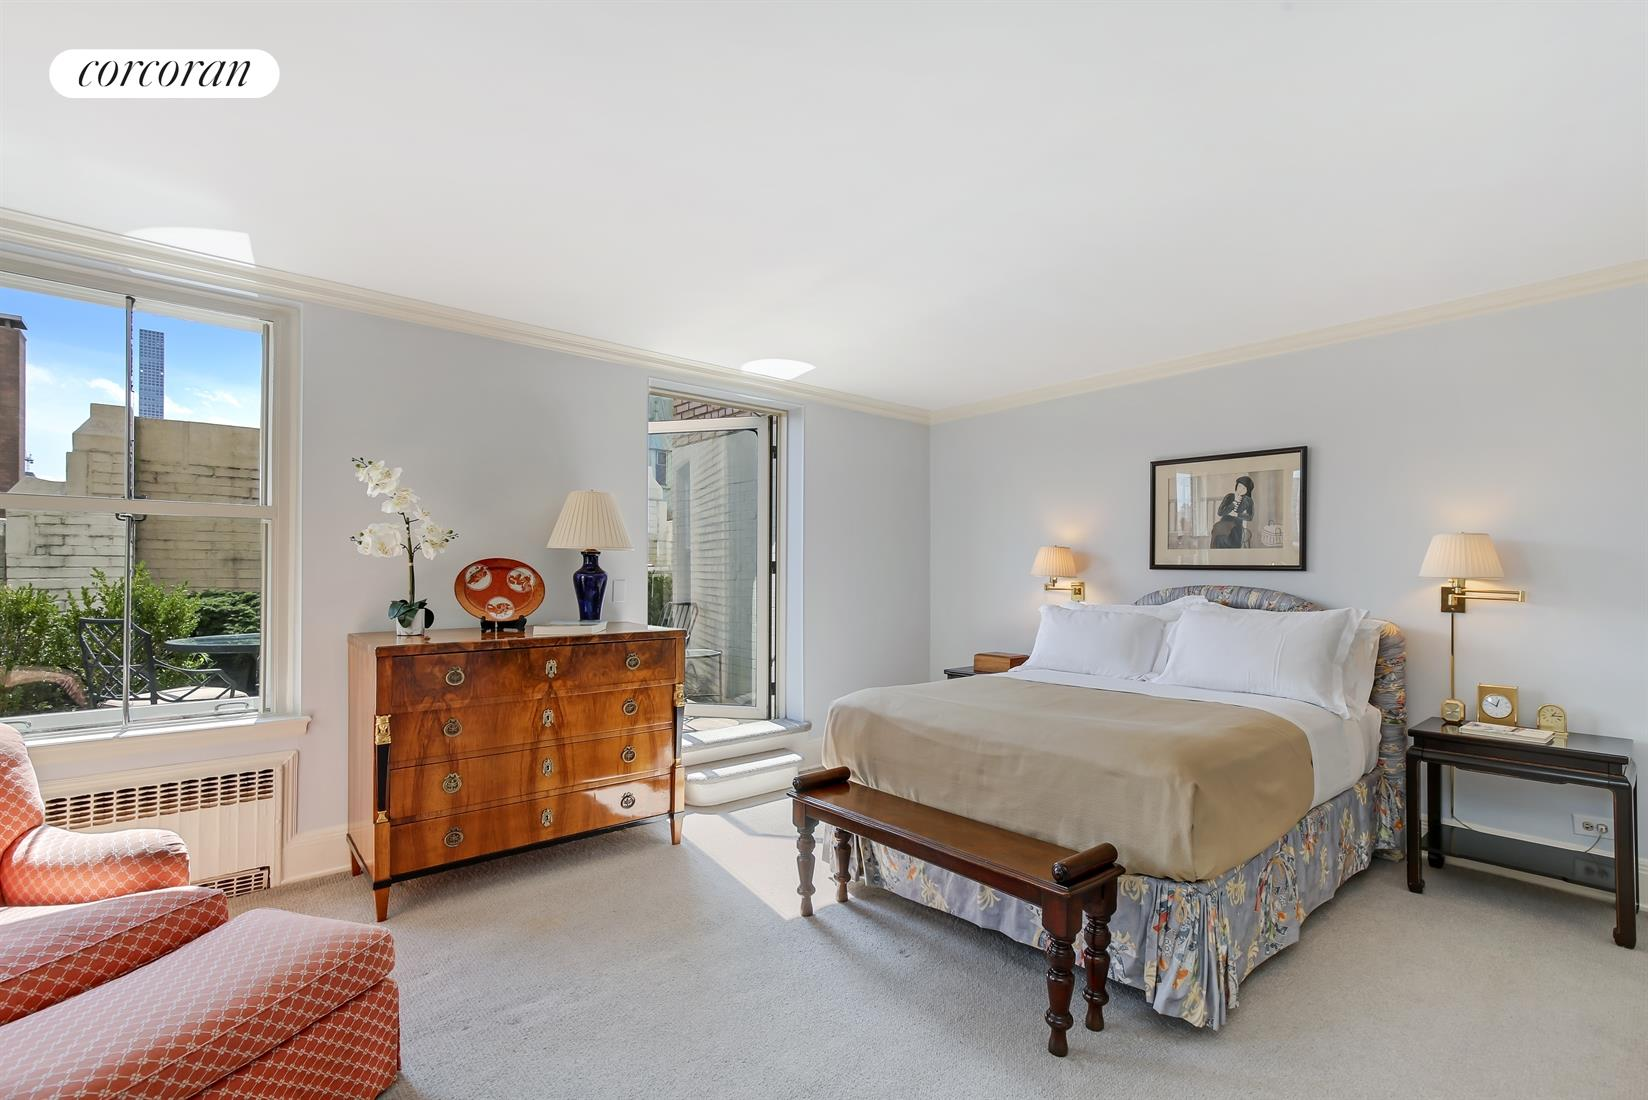 35 East 76th Street, 1708, Terrace with sweeping city views south and east